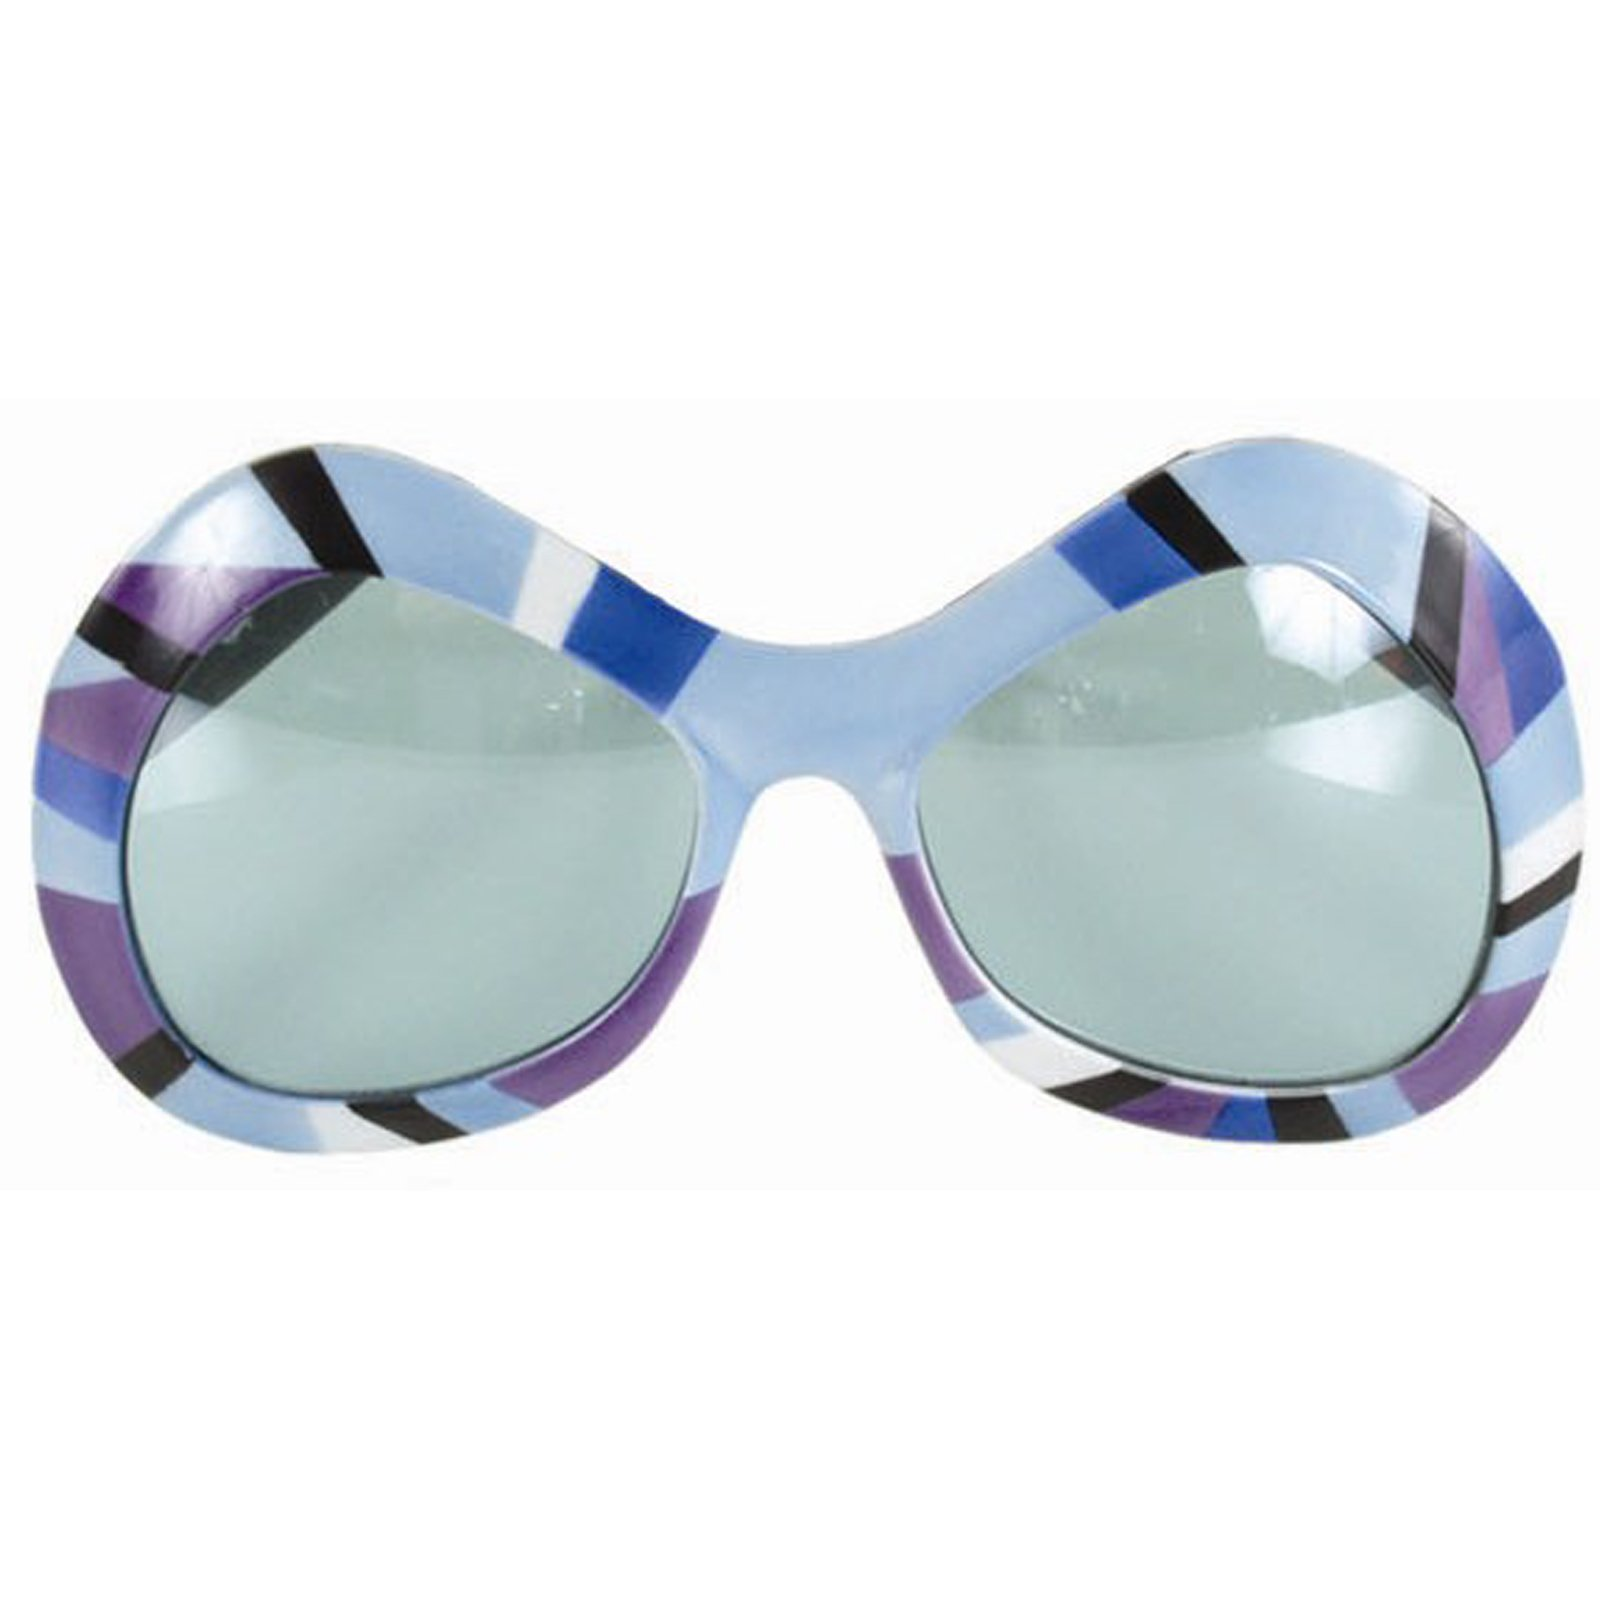 80's Mod Sunglasses - Purple, Green & Blue